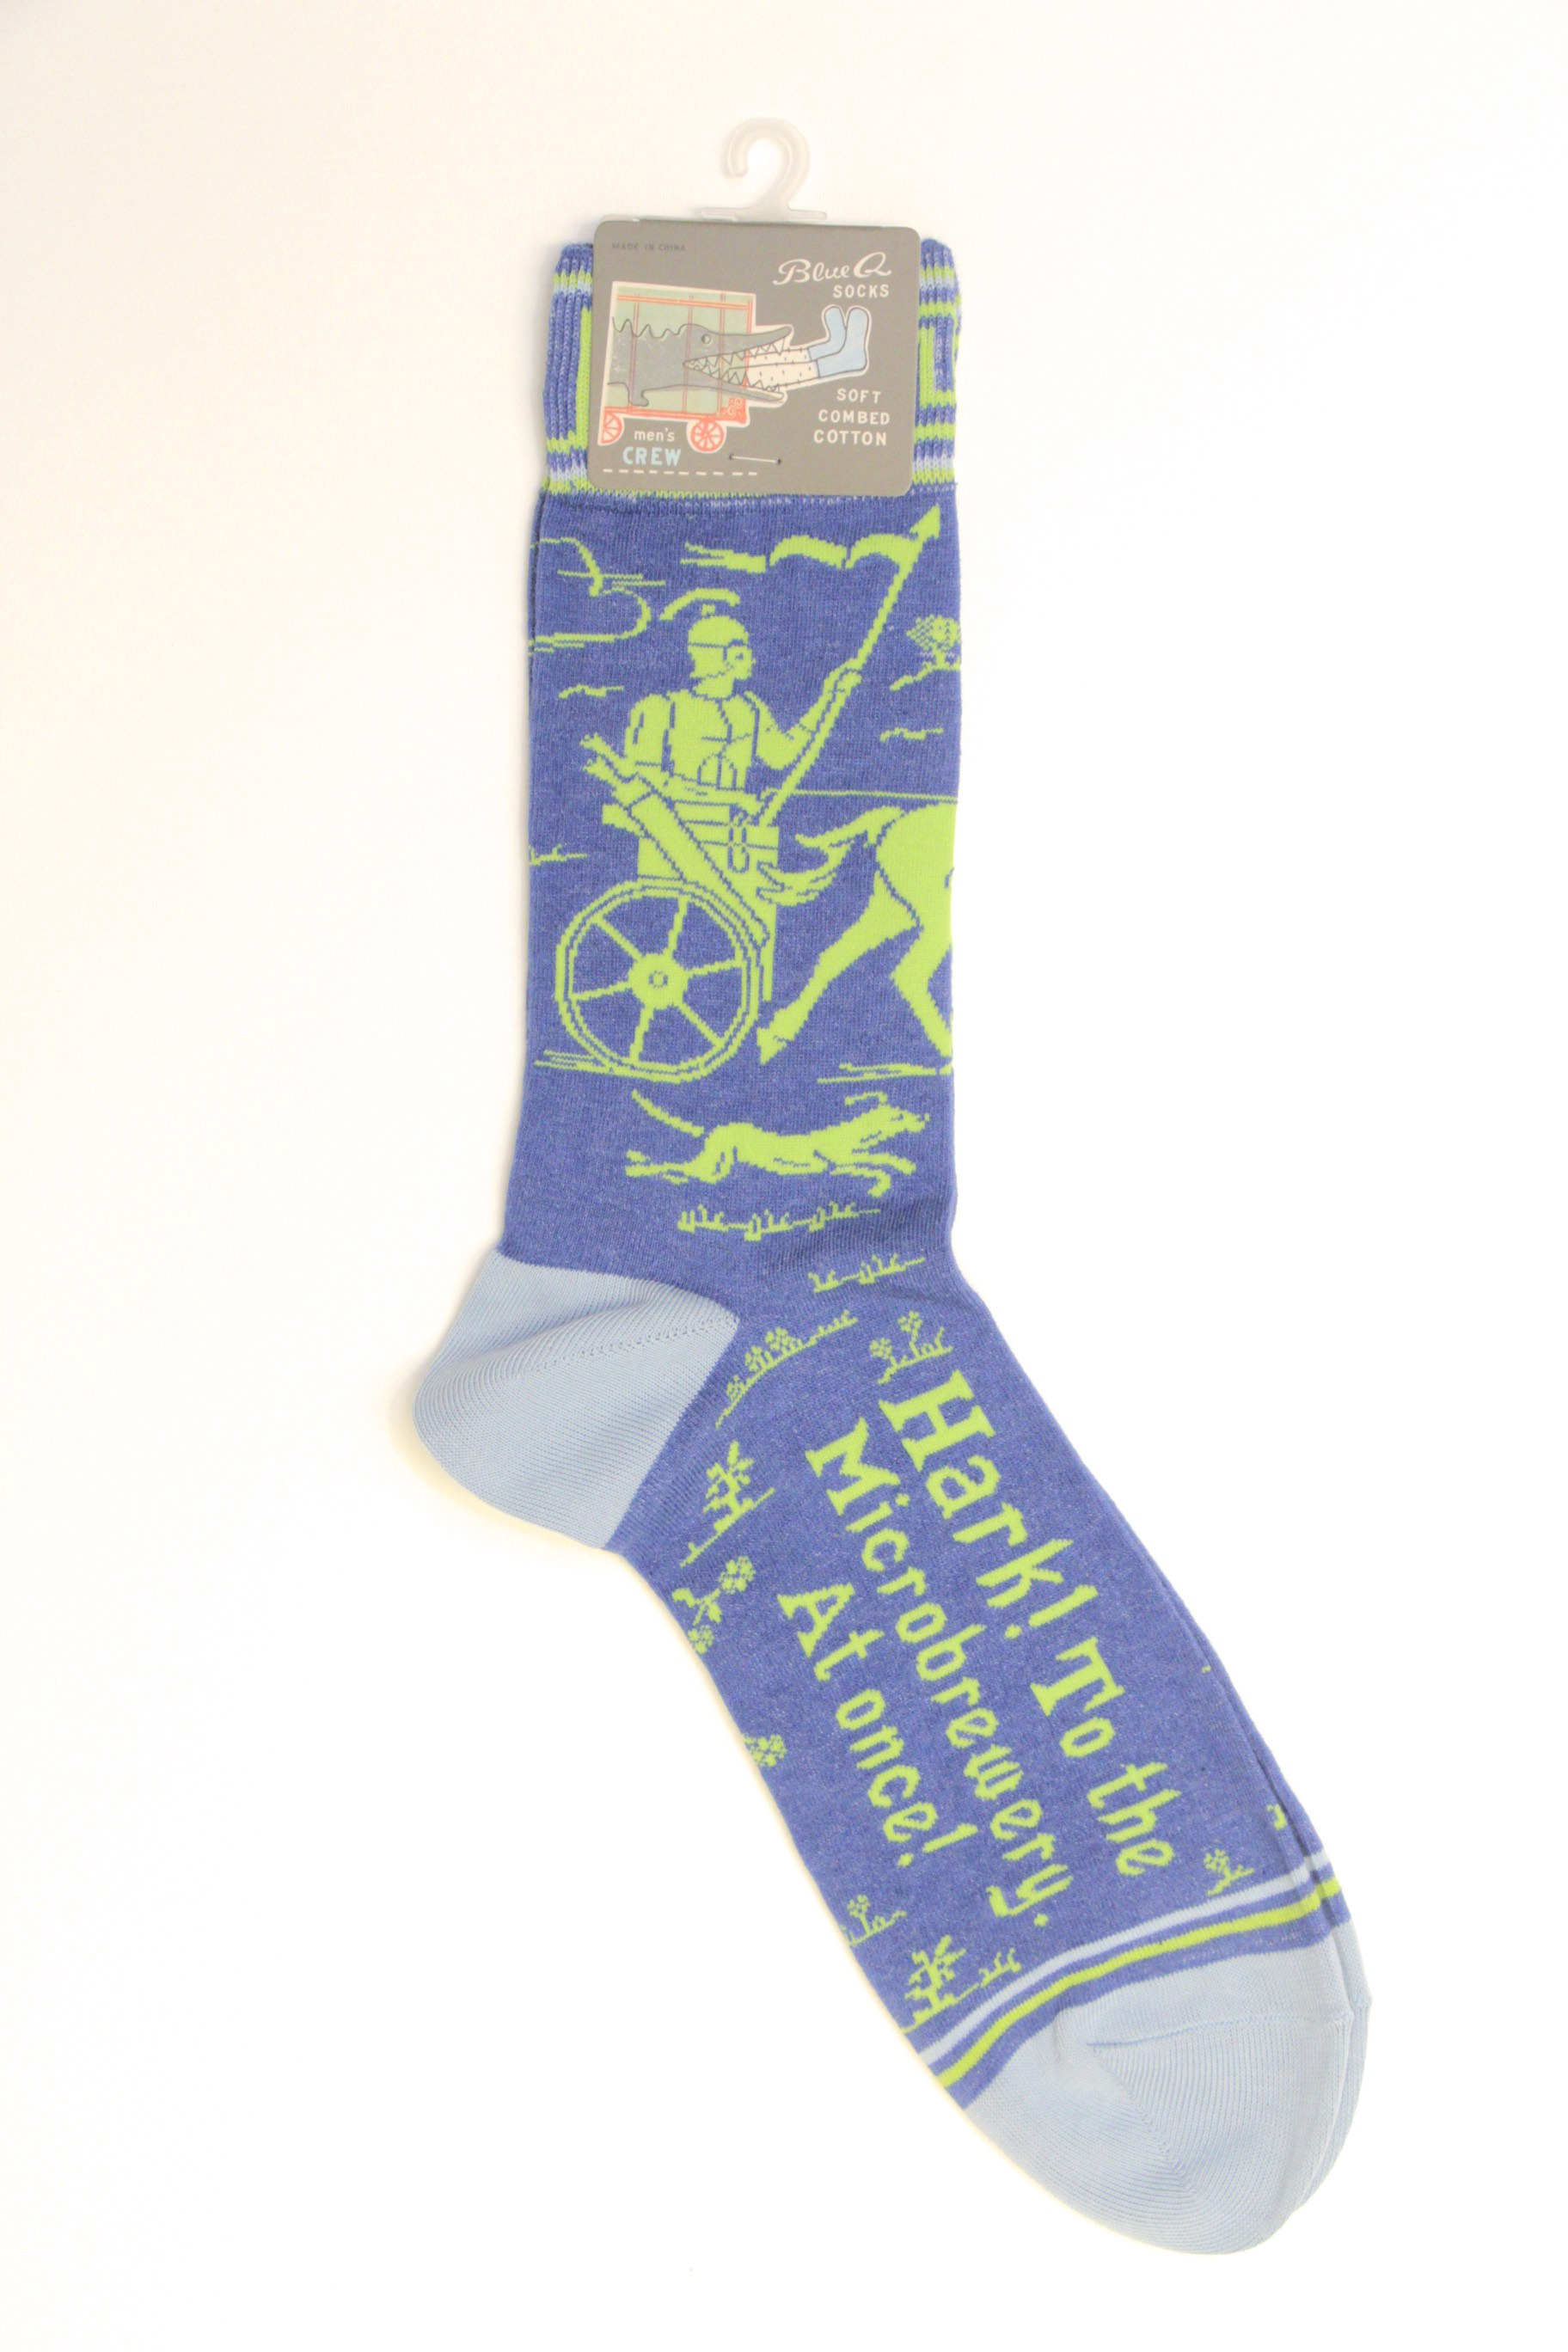 Hark To The Microbrewery At Once Sock Design Archives Emporium Greensboro And Winston Salem